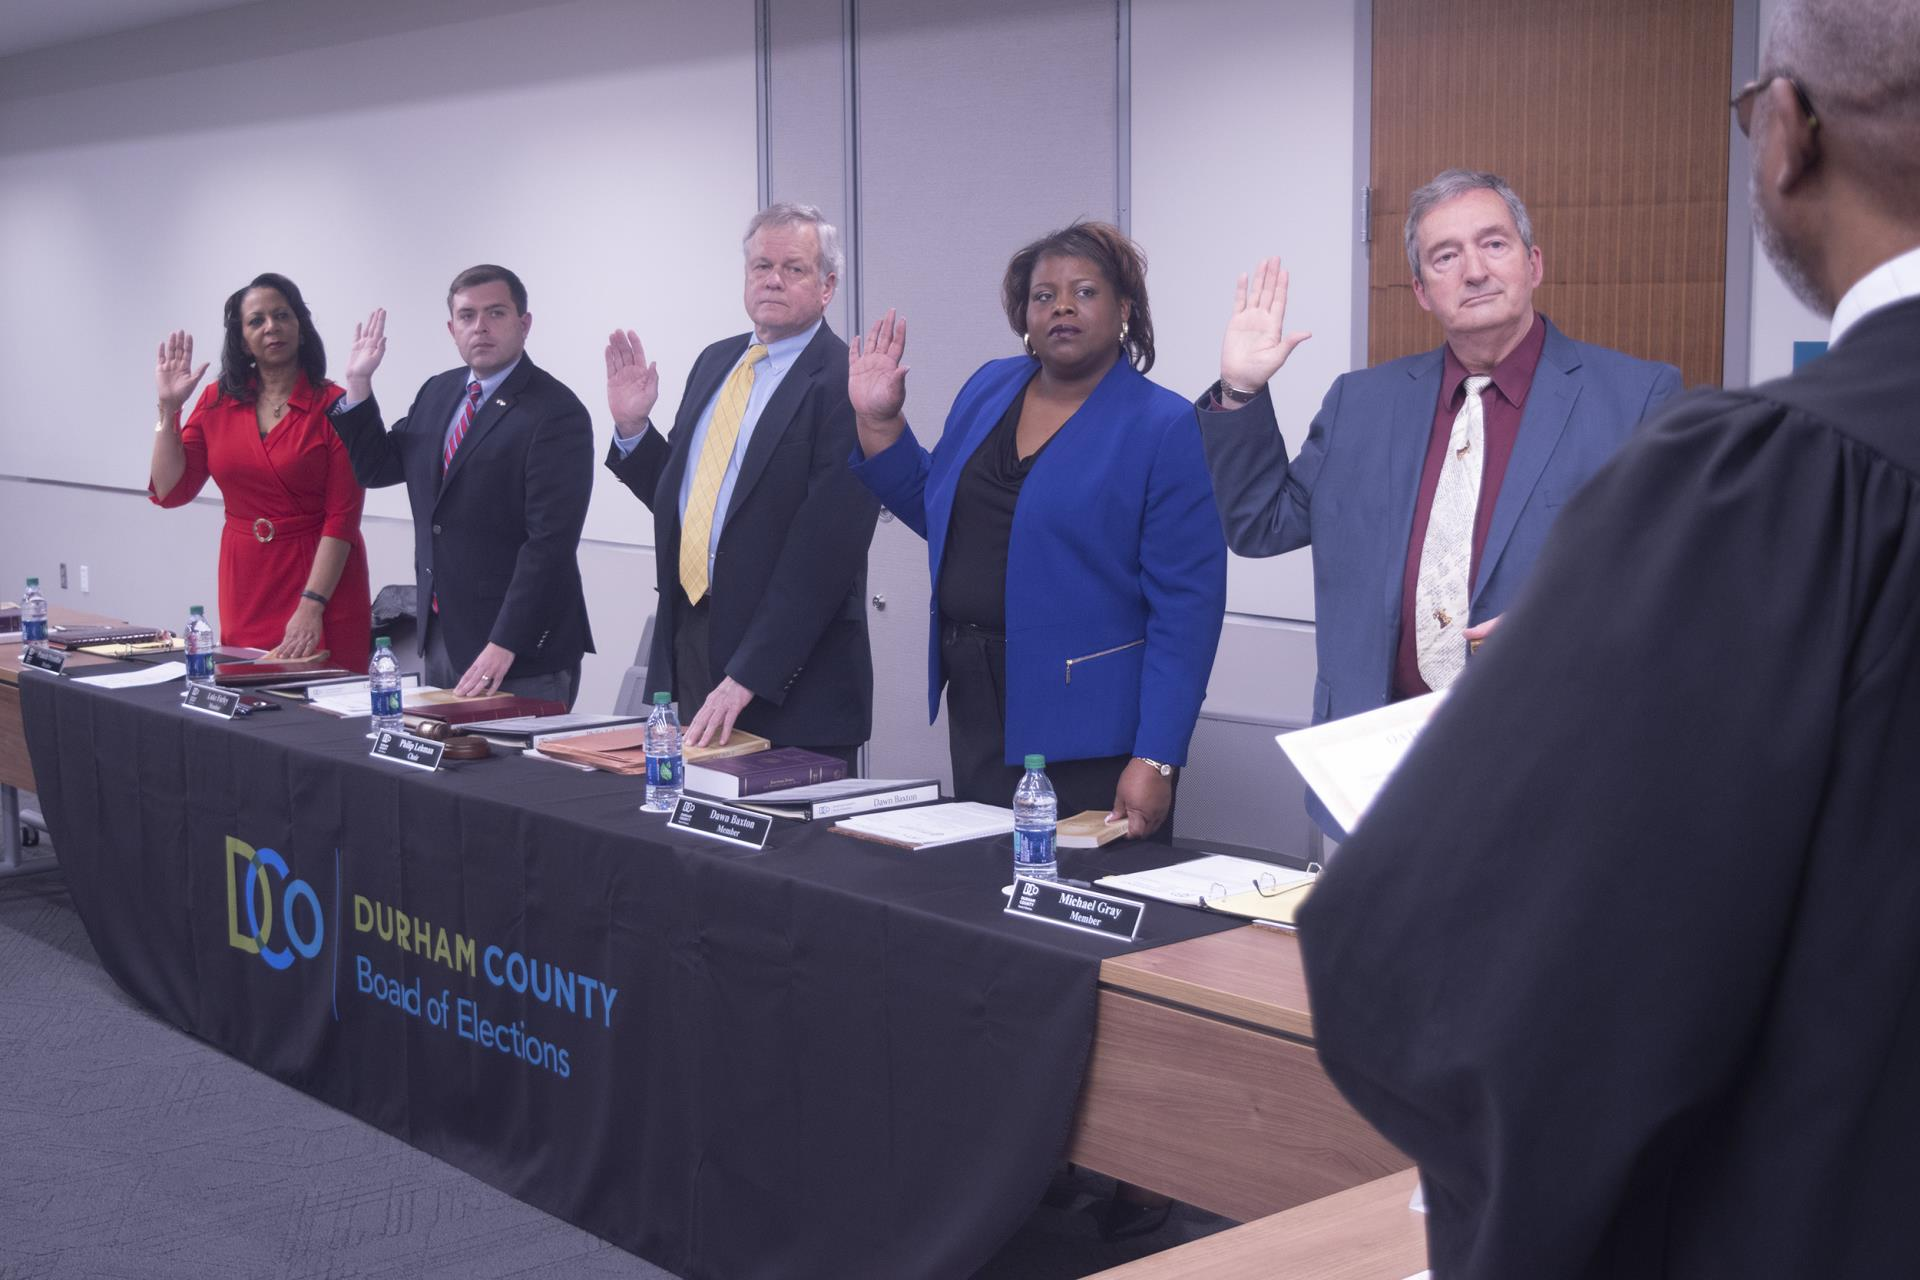 Board of Elections swearing in